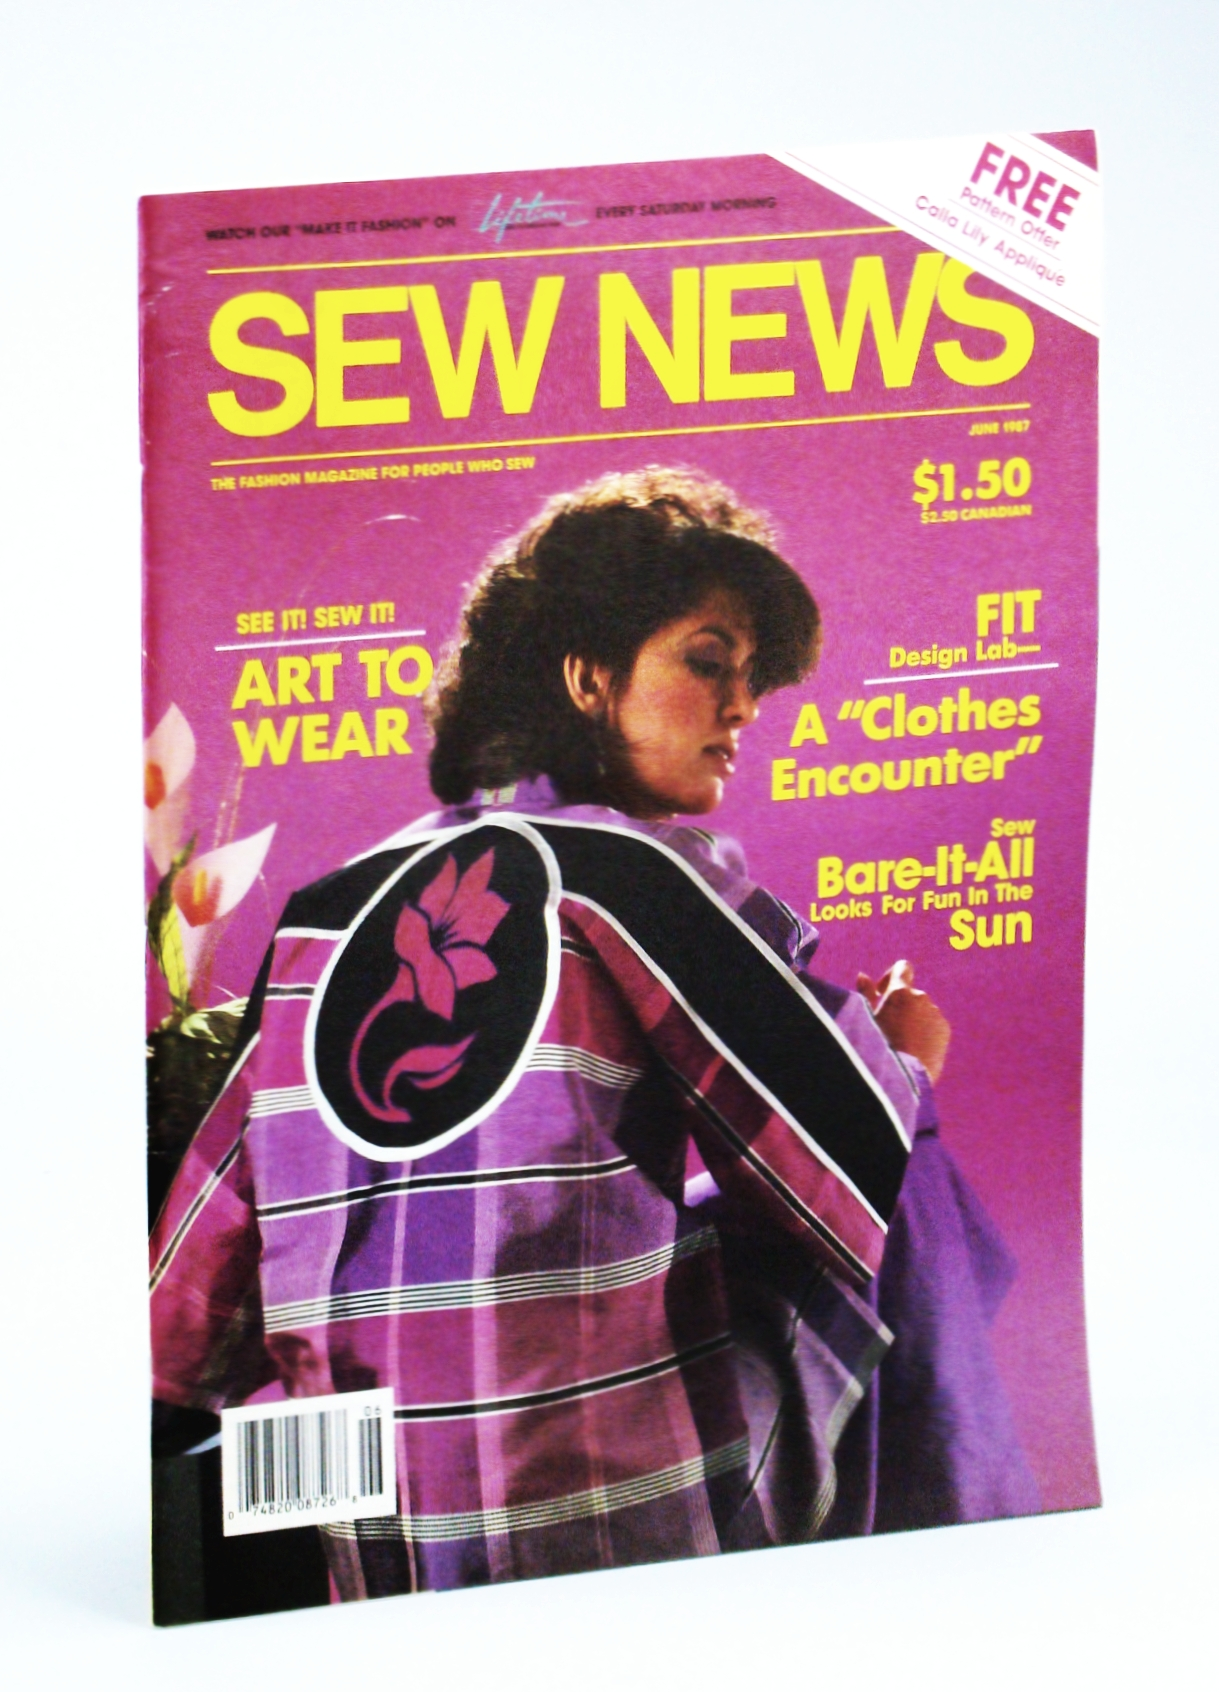 Image for Sew News Magazine - The Fashion Magazine for People Who Sew, Number 57, June 1987 - Art to Wear / Jessica McClintock